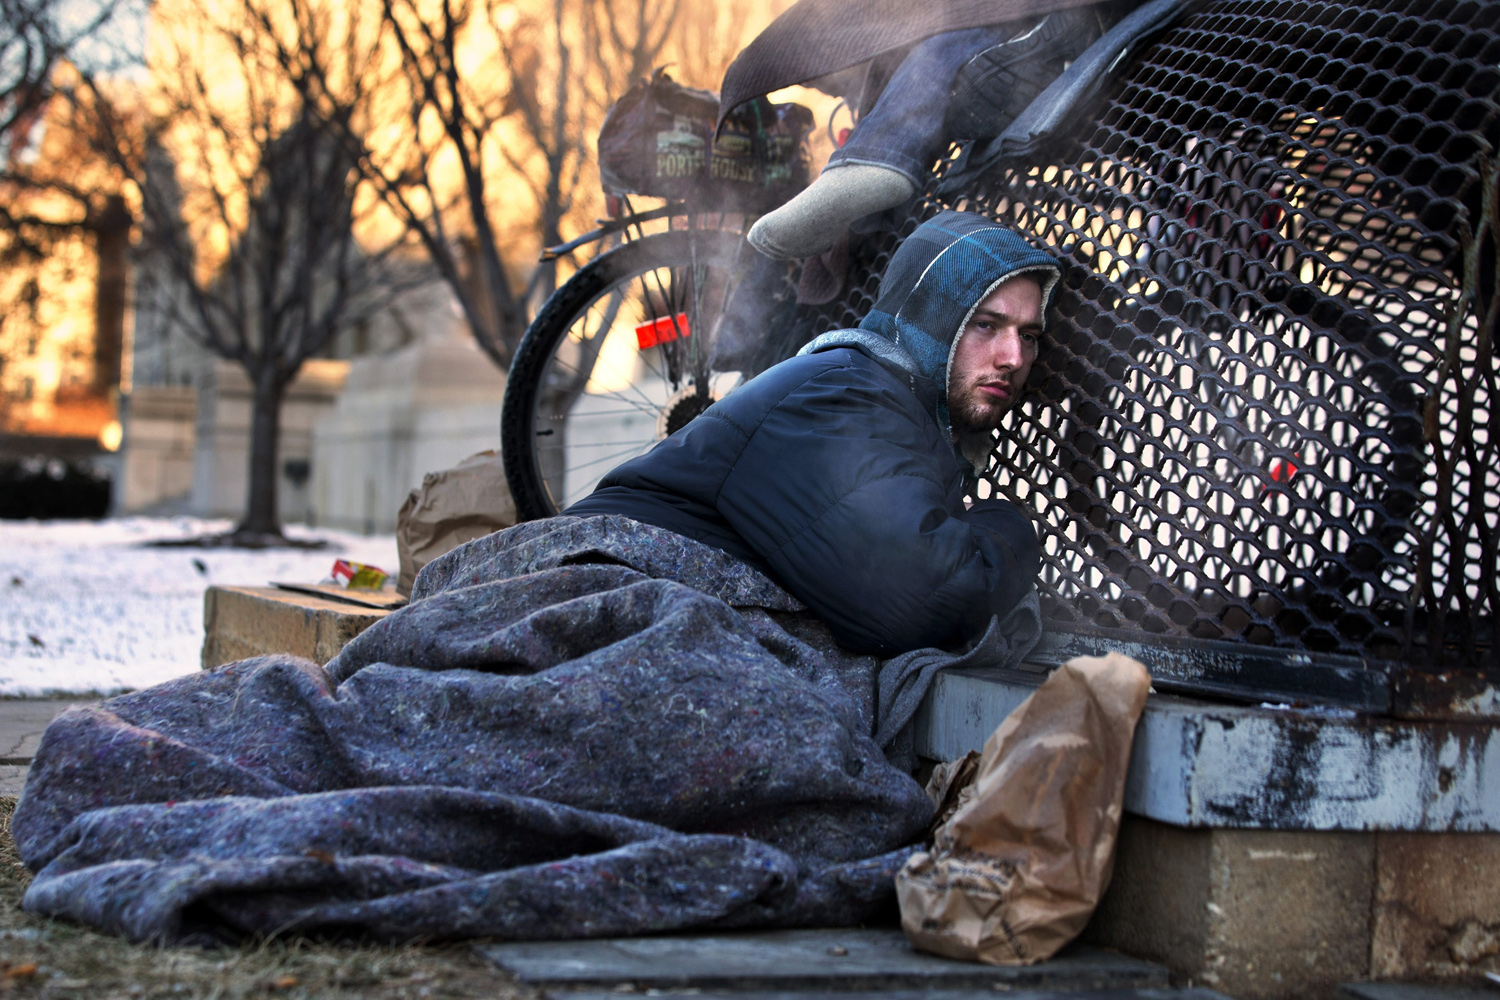 Jan. 4, 2014. Nicholas Simmons, 20, of Greece, N.Y.,  warms himself on a steam grate with three homeless men by the Federal Trade Commission, just blocks from the Capitol, during frigid temperatures in Washington.